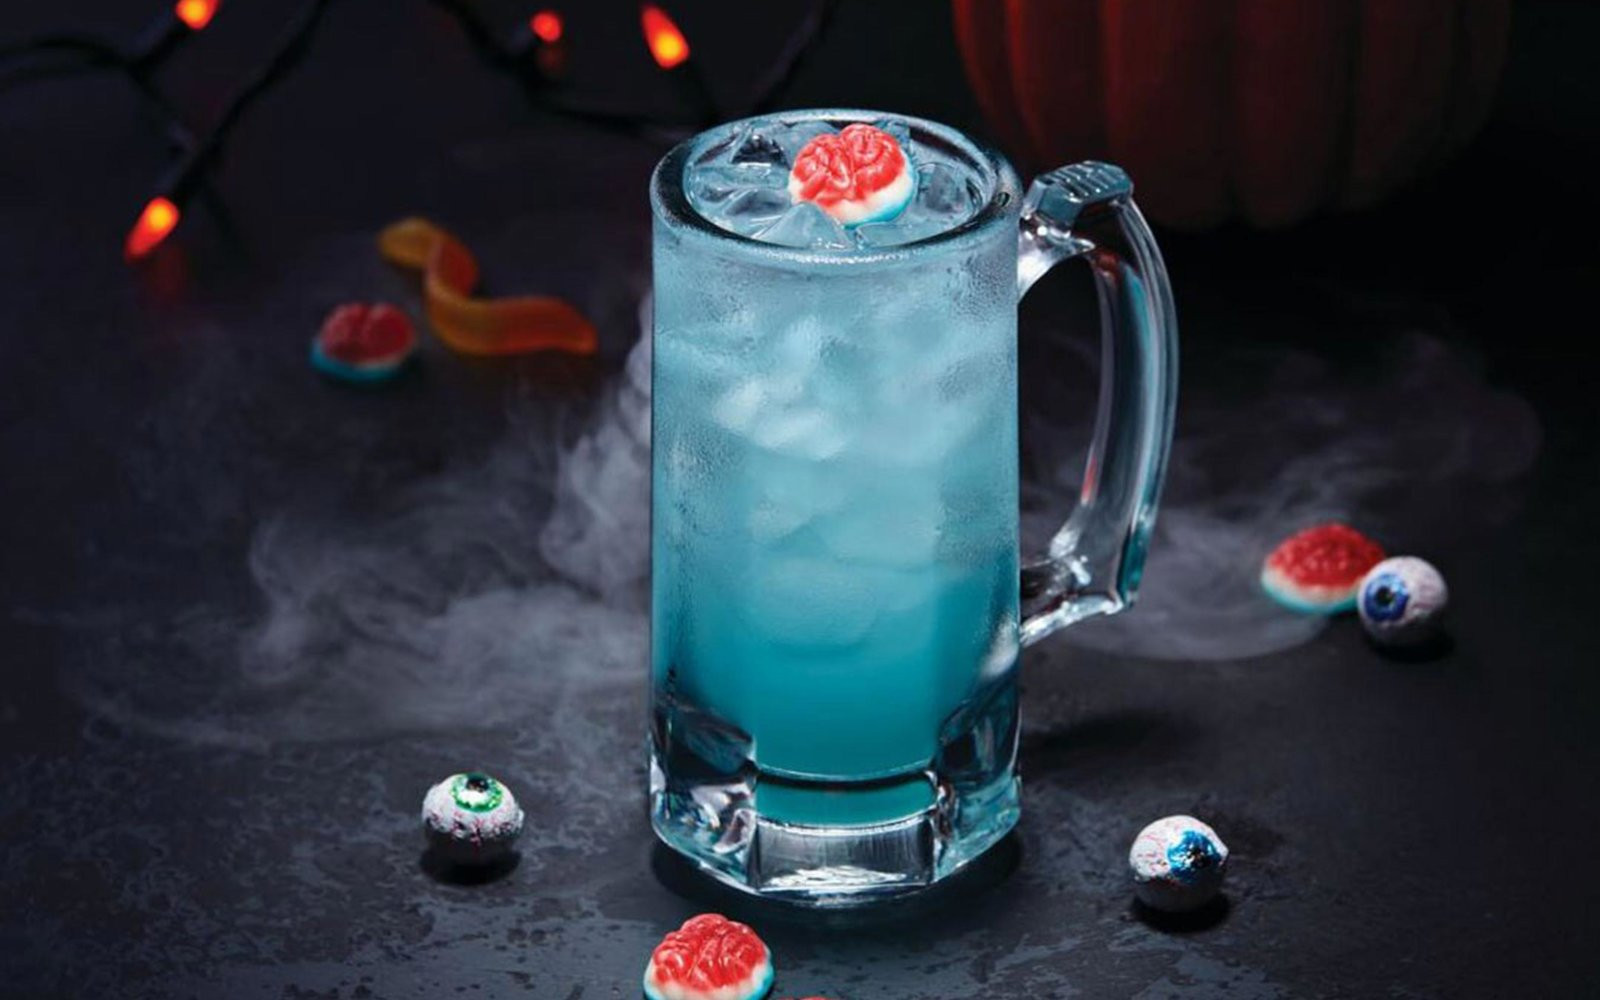 Applebees Halloween Drinks  Applebee s Is Celebrating Halloween With $1 Zombie